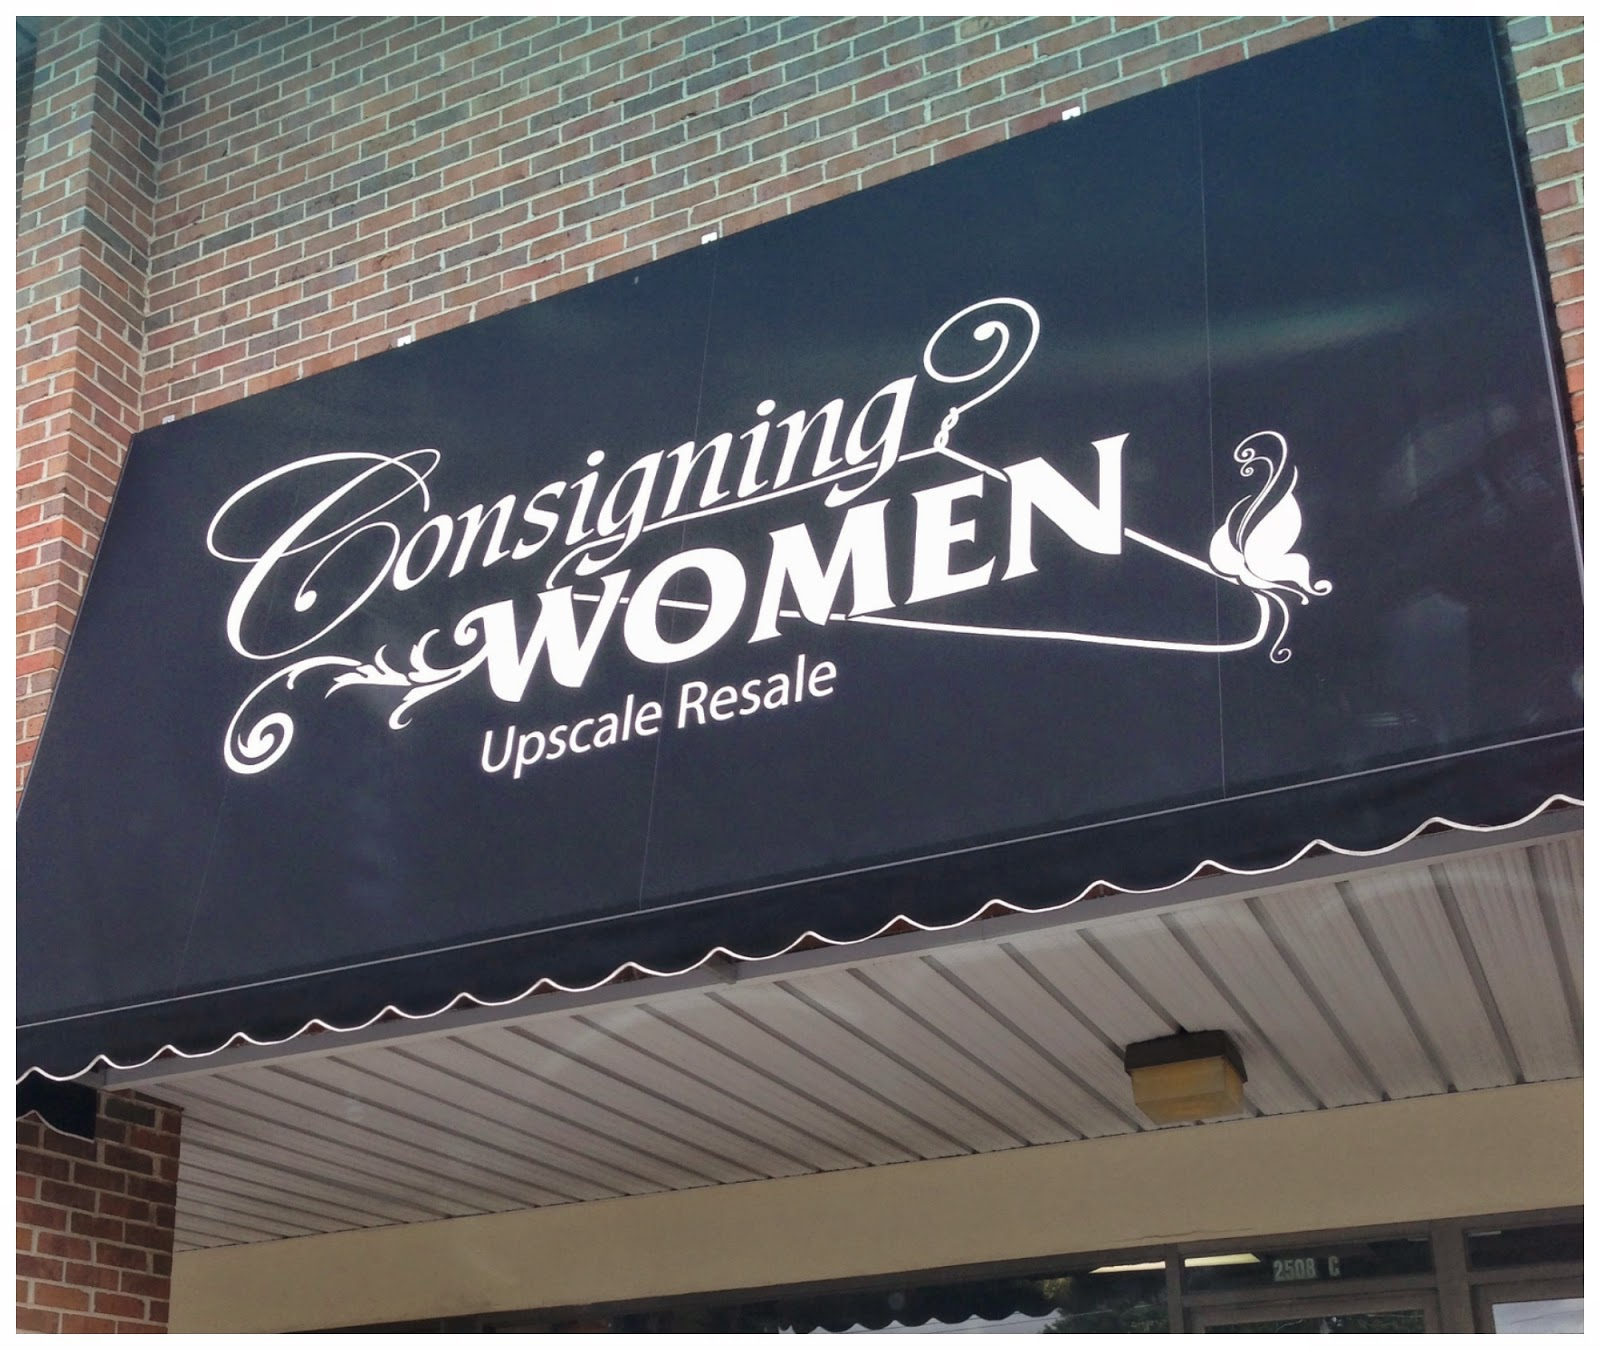 Atlanta Consignment Stores: Shop Consigning Women For